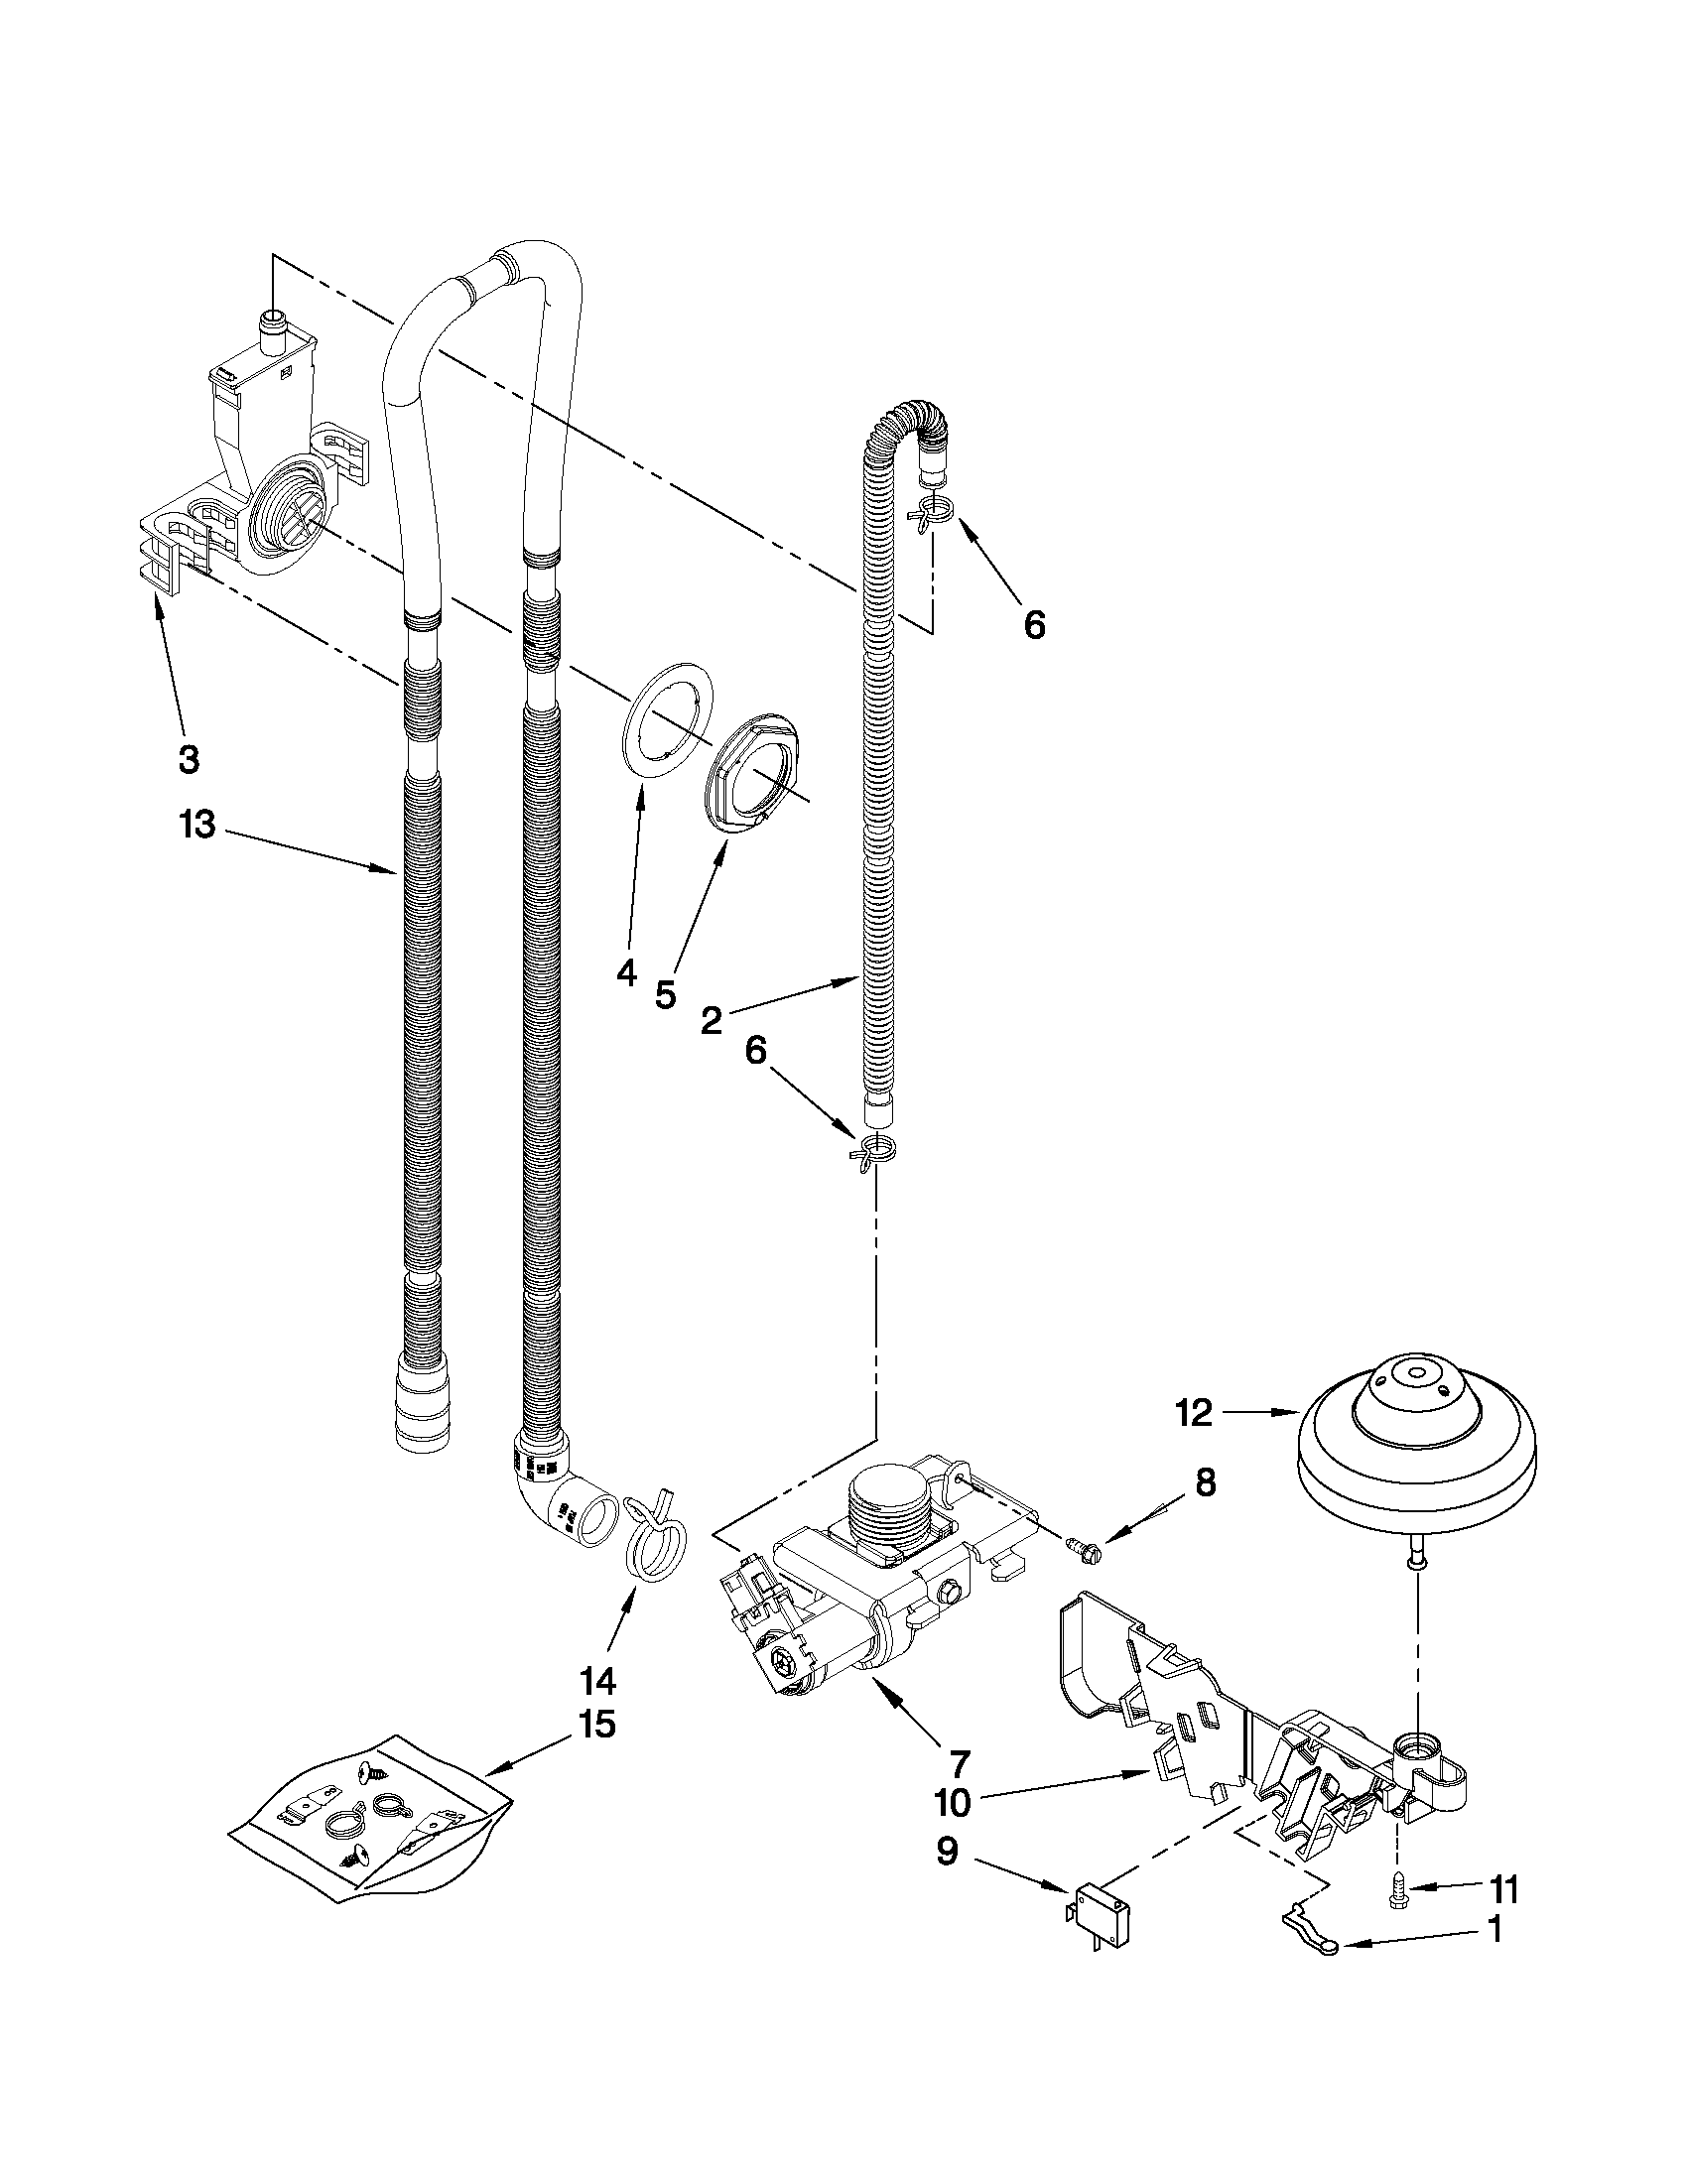 Whirlpool DU1055XTVS3 fill, drain and overfill parts diagram